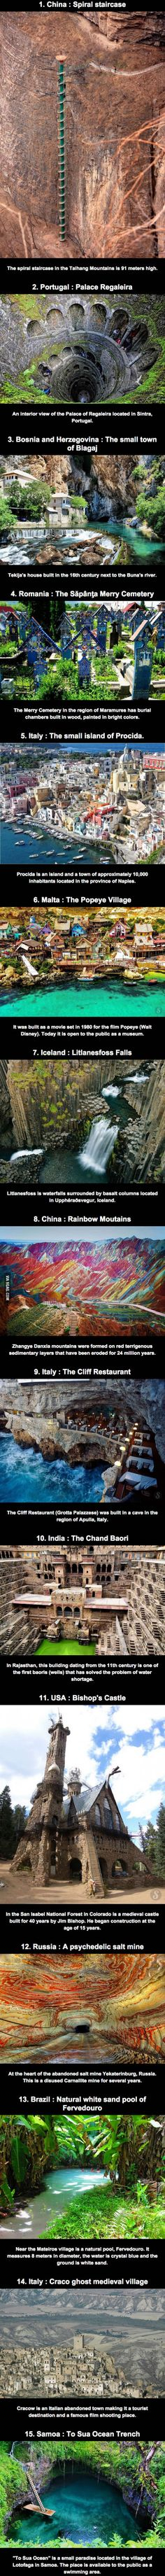 15 places need to visit before dying